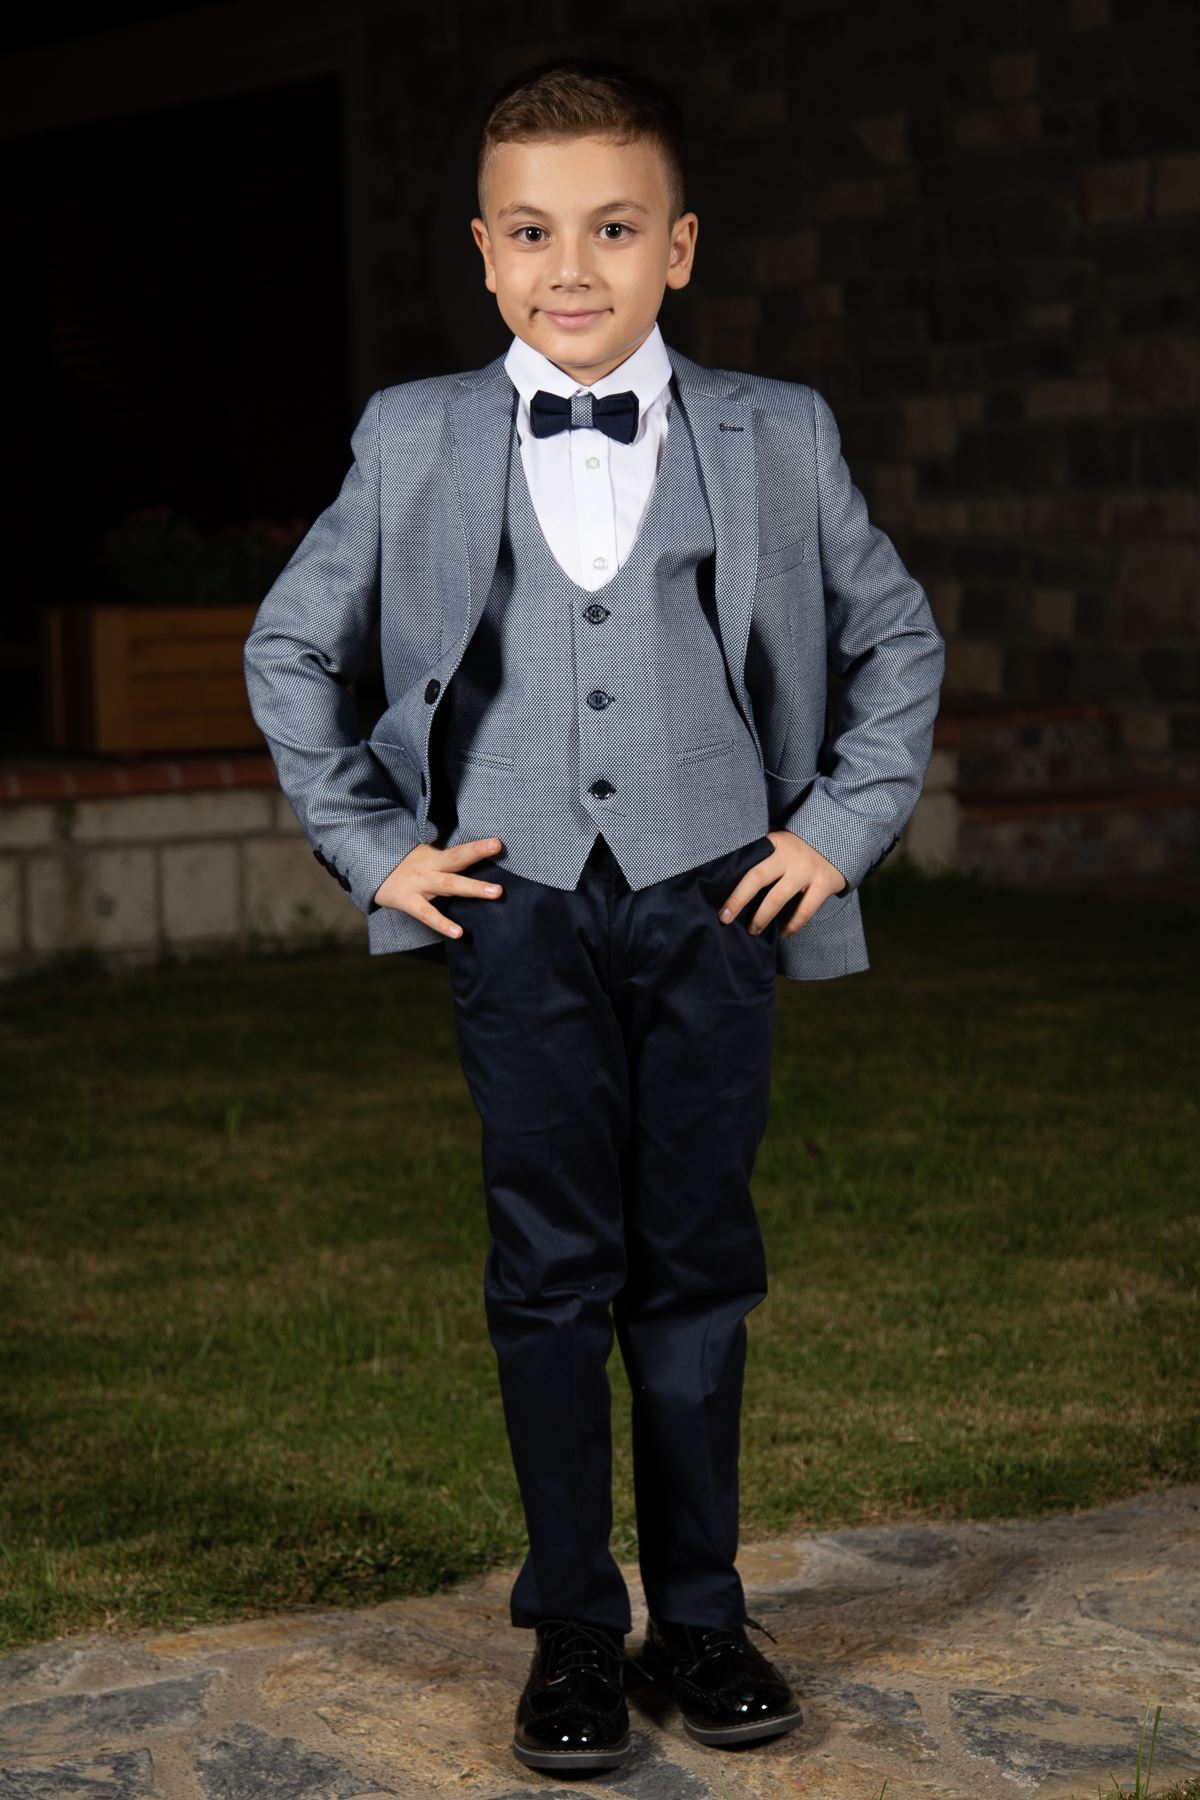 Score Pattern, Bag Pocket, Mono Collar, Full Set Boy Suit 159 Navy